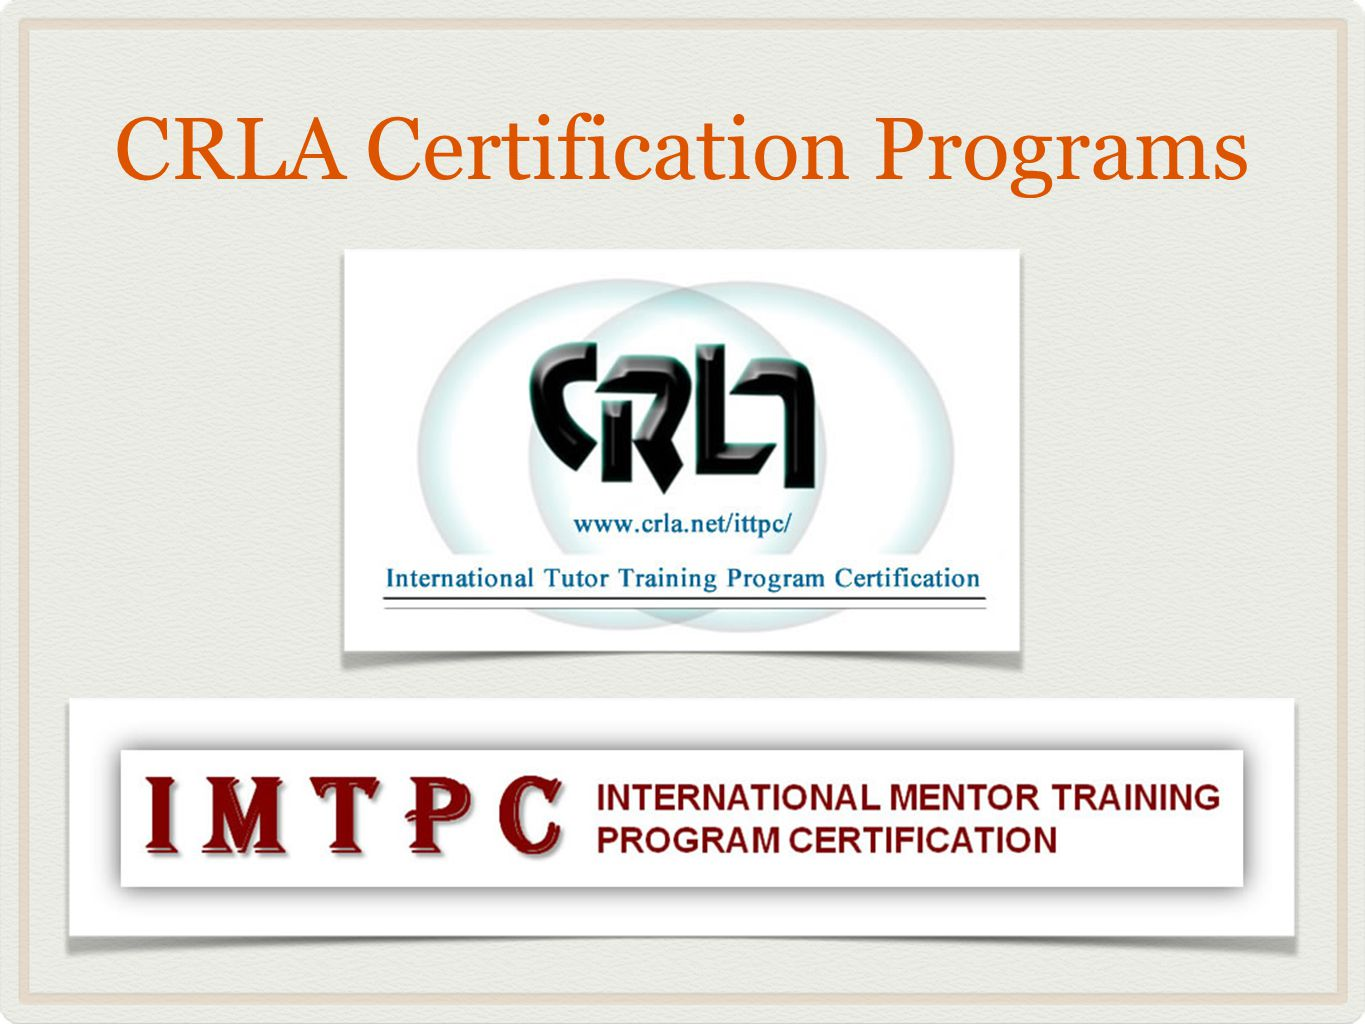 International Mentor Training Program Certification Page Keller